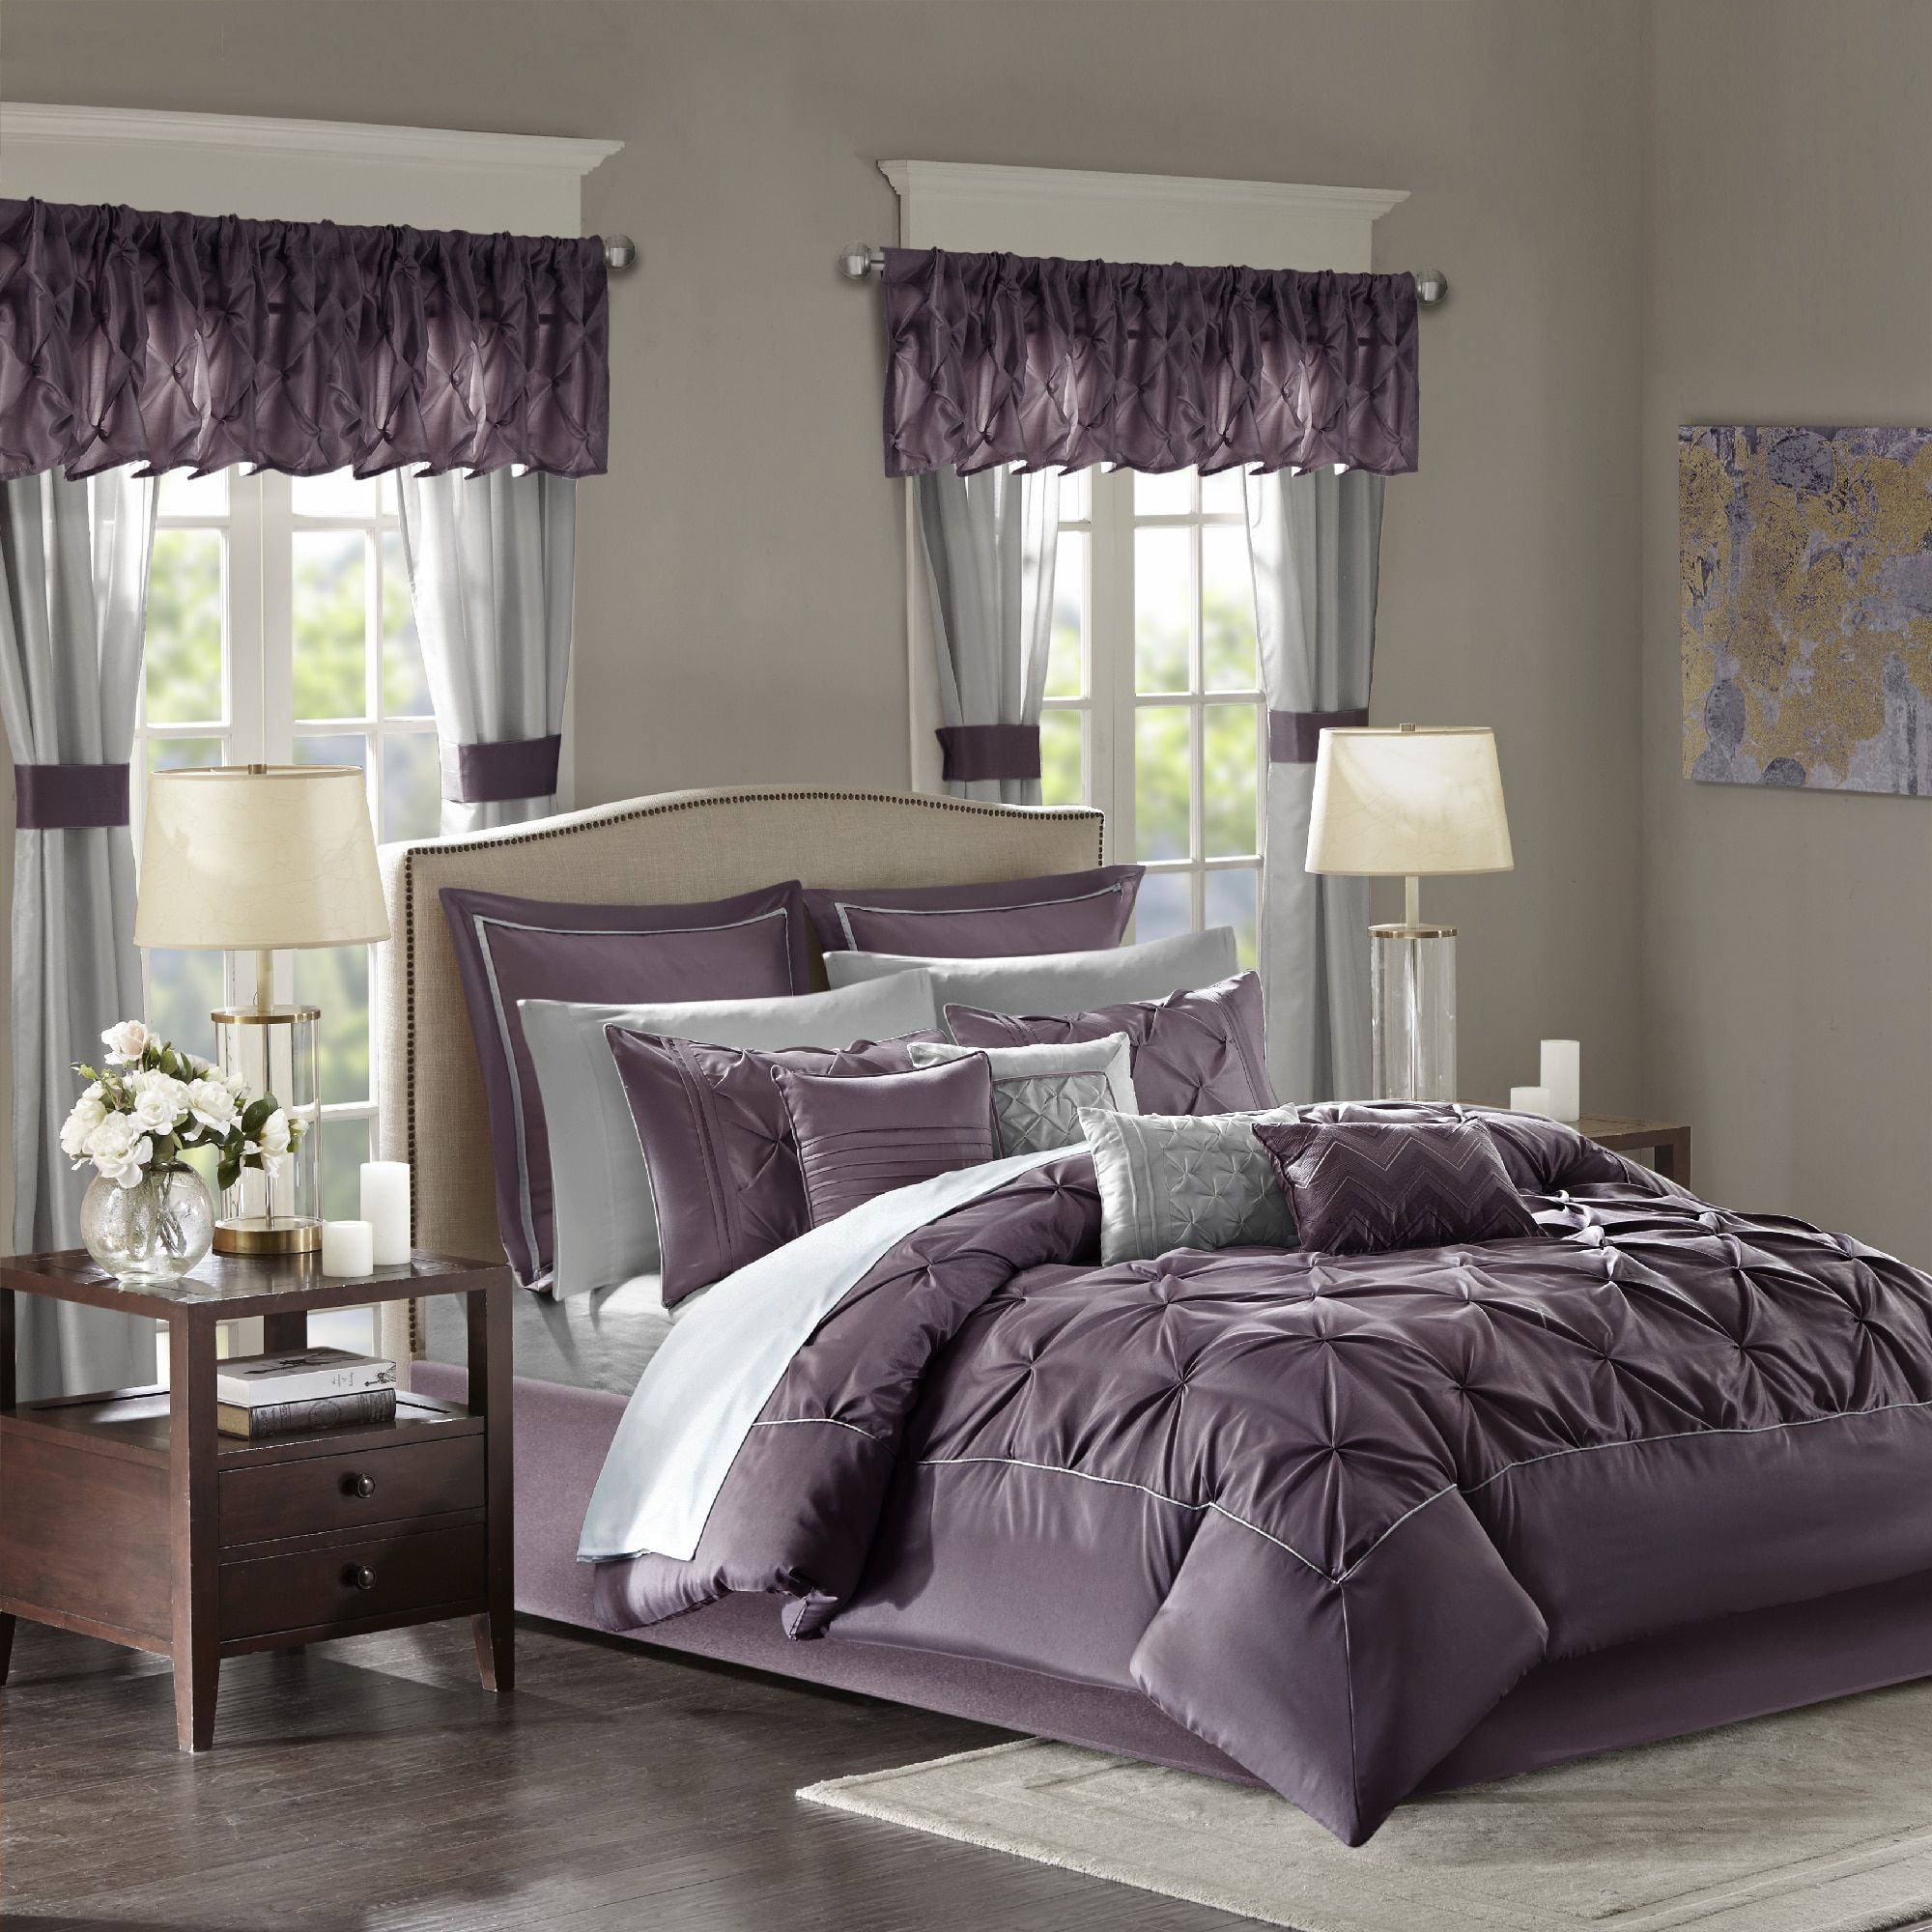 essentials pieces shipping sheet pieced curtain bedding free bath included park product jacquard room bag charley set window a madison grey today overstock in